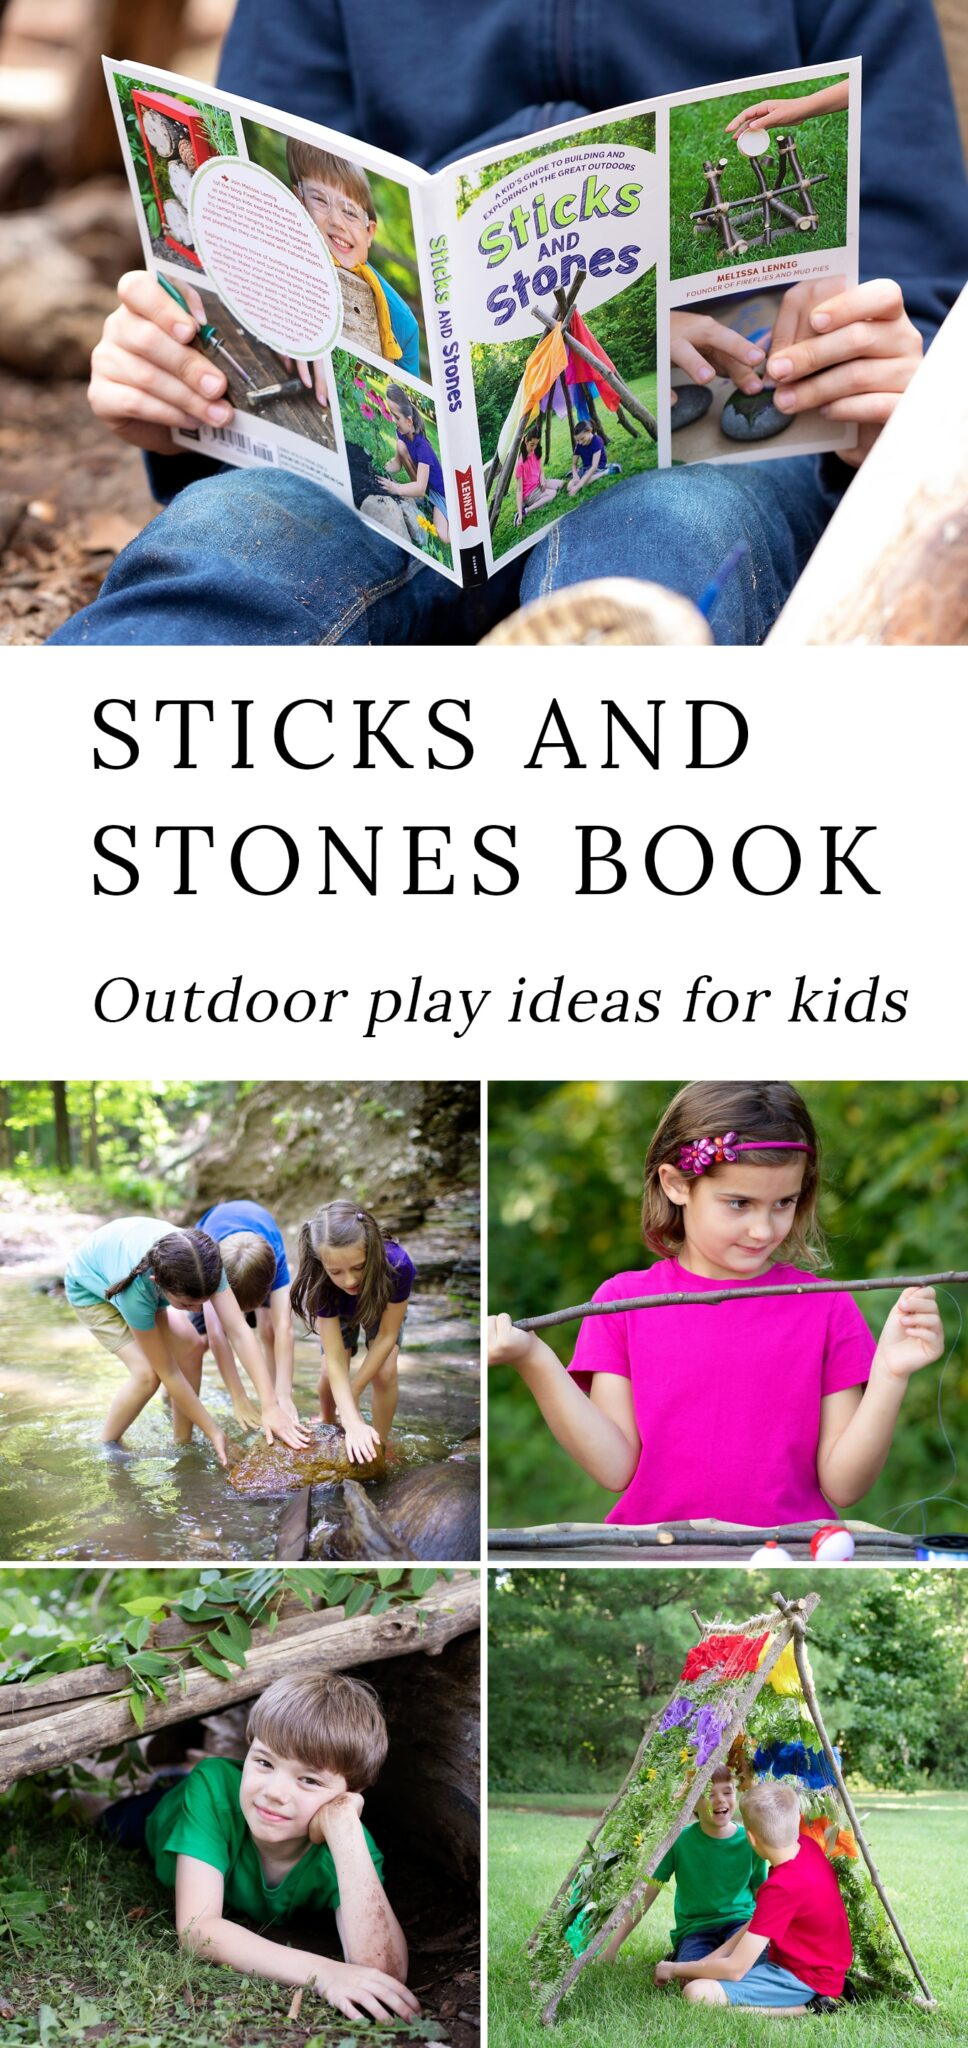 Sticks and Stones presents a treasure trove of building and engineering ideas for children to employ in the great outdoors using the materials made readily available to them, from shelters and forts to bridges and dams. Many smaller-scale projects are included, too—such as how to make ochre paint with shale, make a fishing pole, and carve a marshmallow roasting stick. #books #kids #outdoor via @firefliesandmudpies